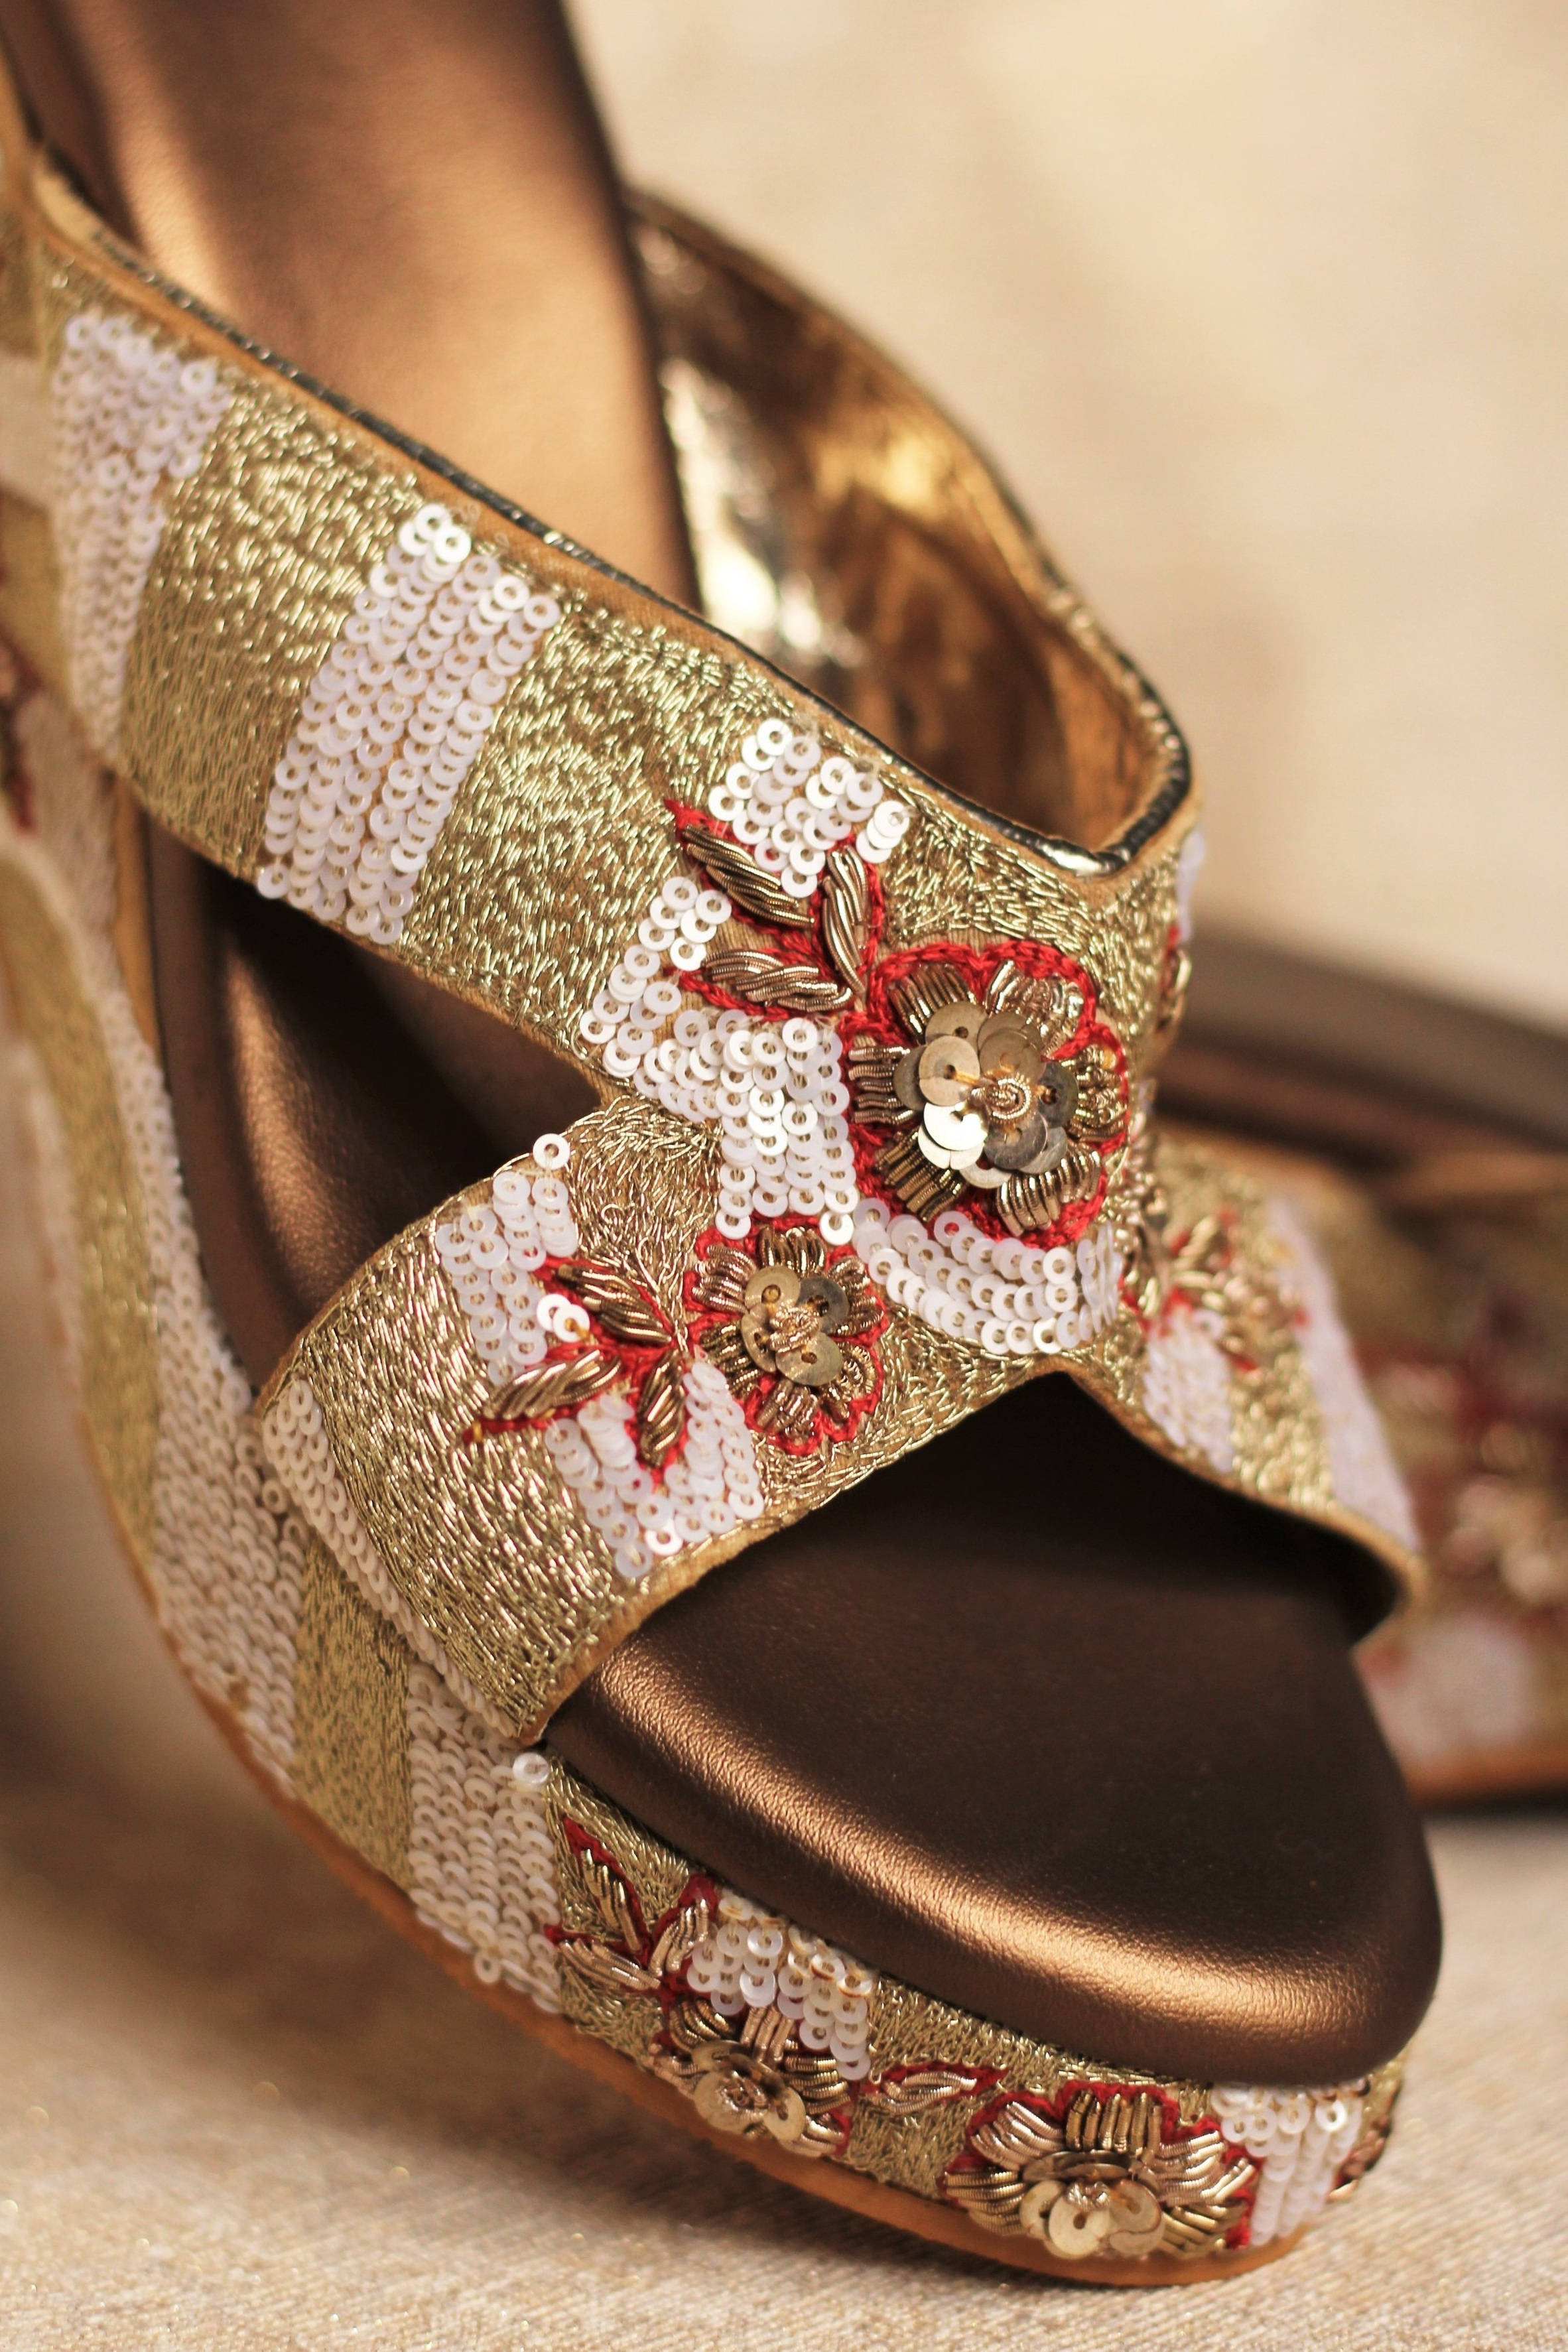 Wedges - Keeping in mind the Indian wedding which moves from moonlight to daylight we have designed the wedges to provide superior comfort, with a mixture of lavish details and intricate craftsmanship.